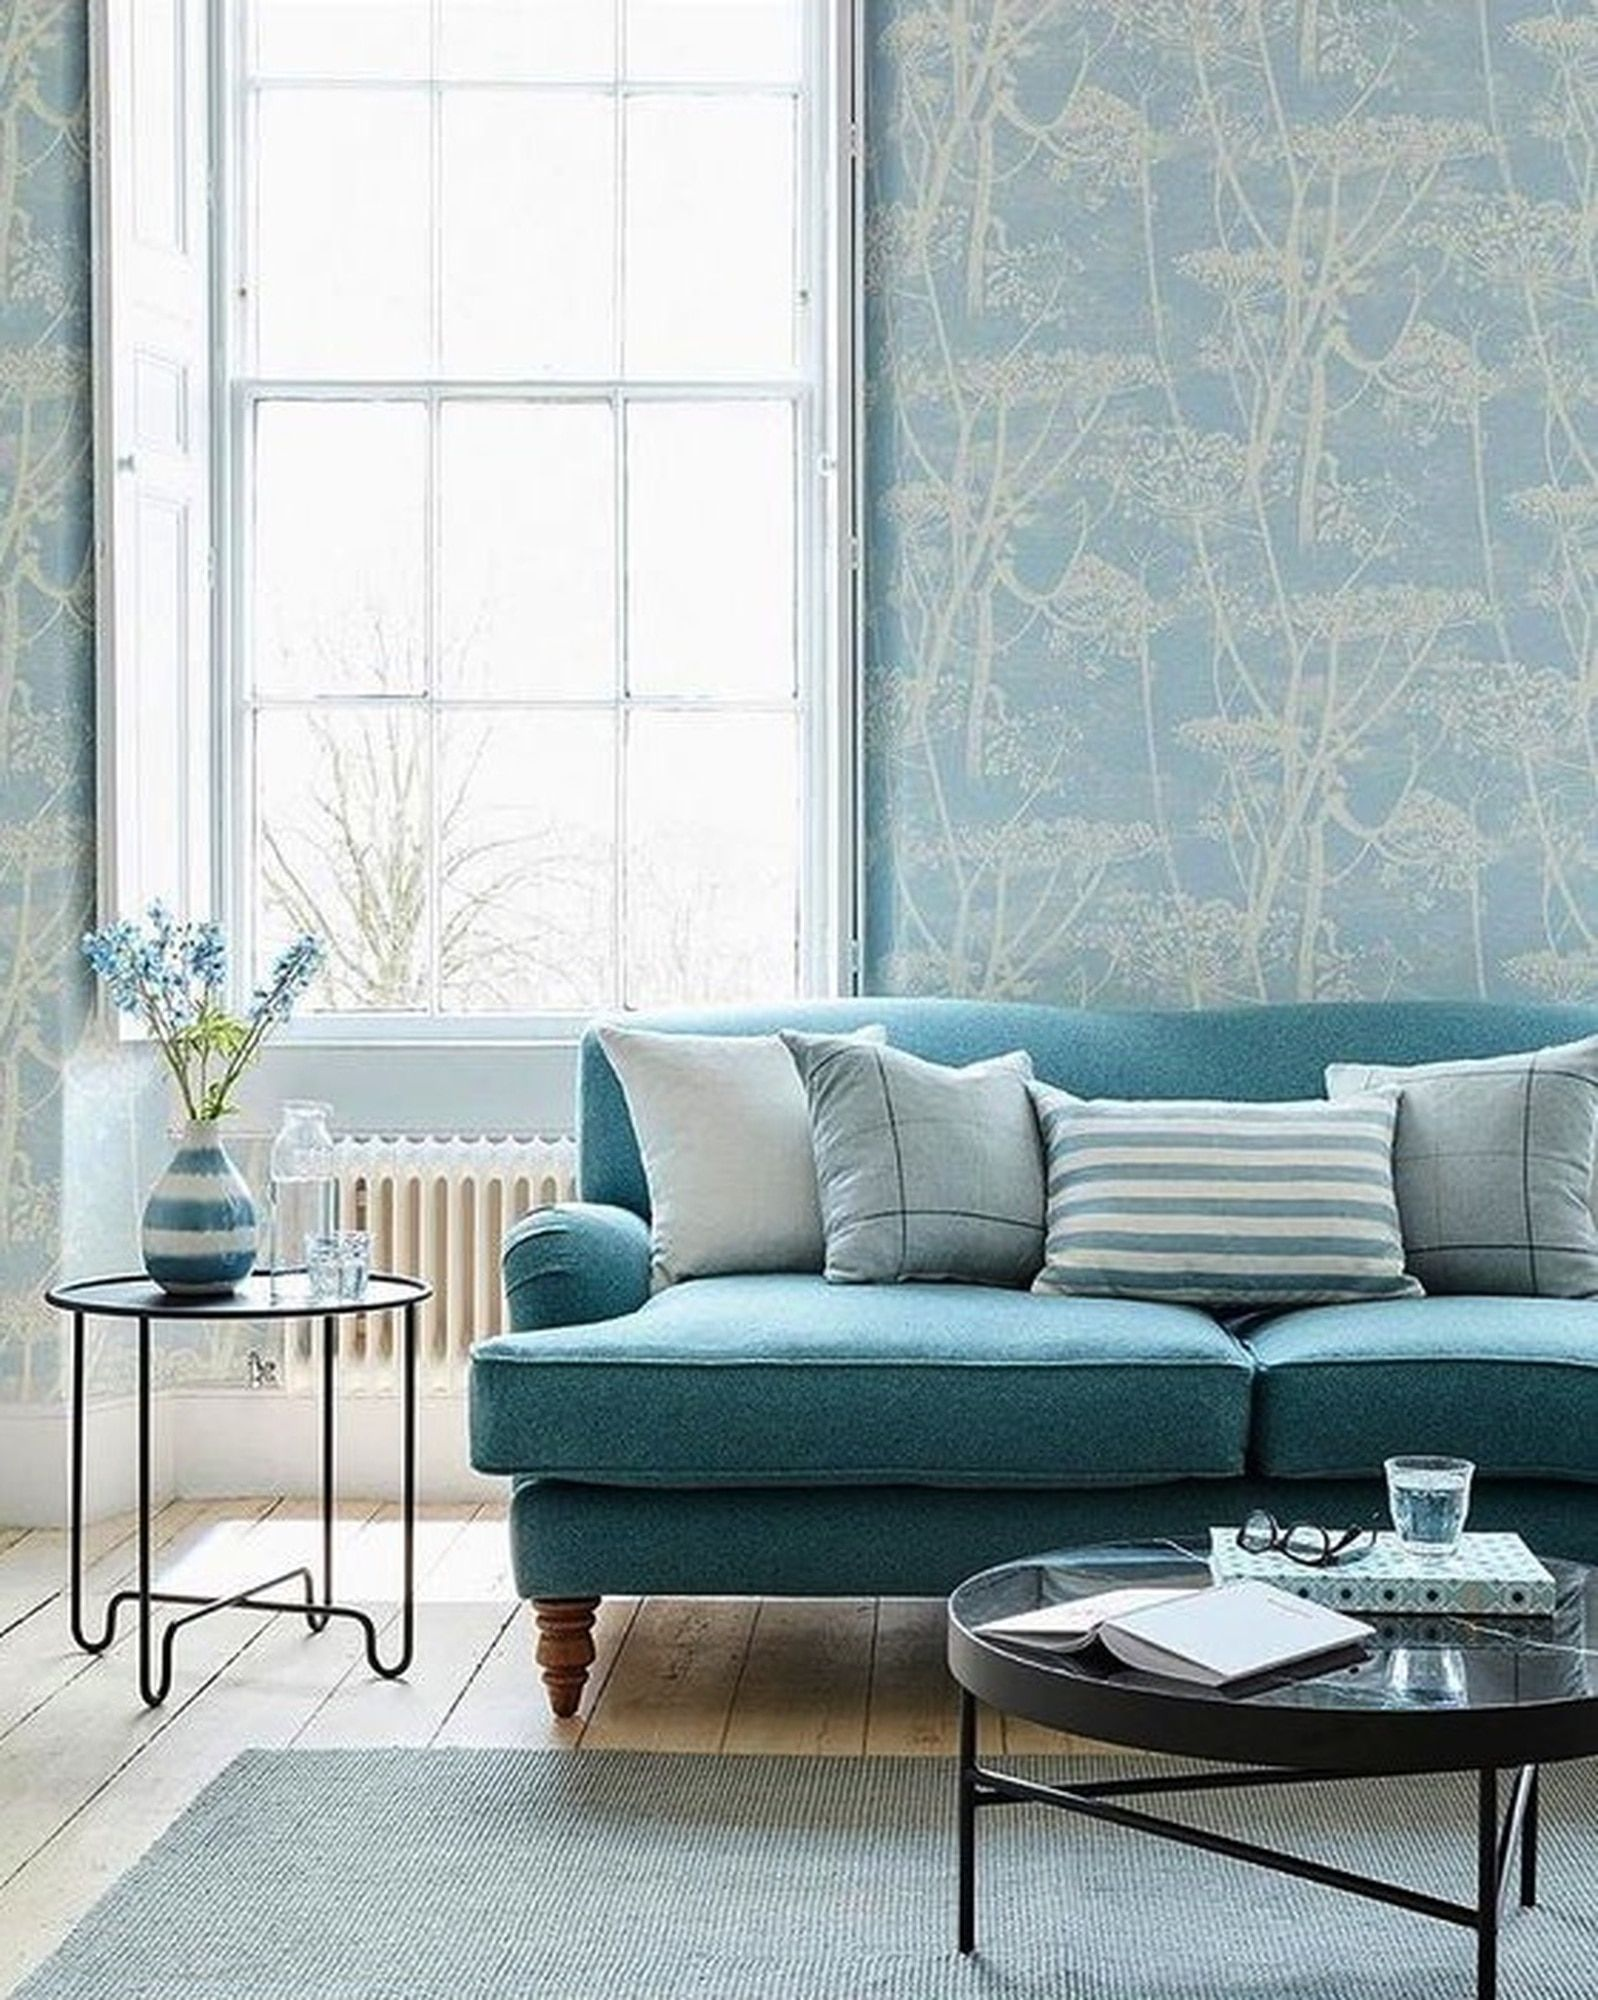 Cow Parsley Pale Blue In 2020 Light Blue Living Room Blue Sofas Living Room Blue Wallpaper Living Room Blue colour wallpaper for living room